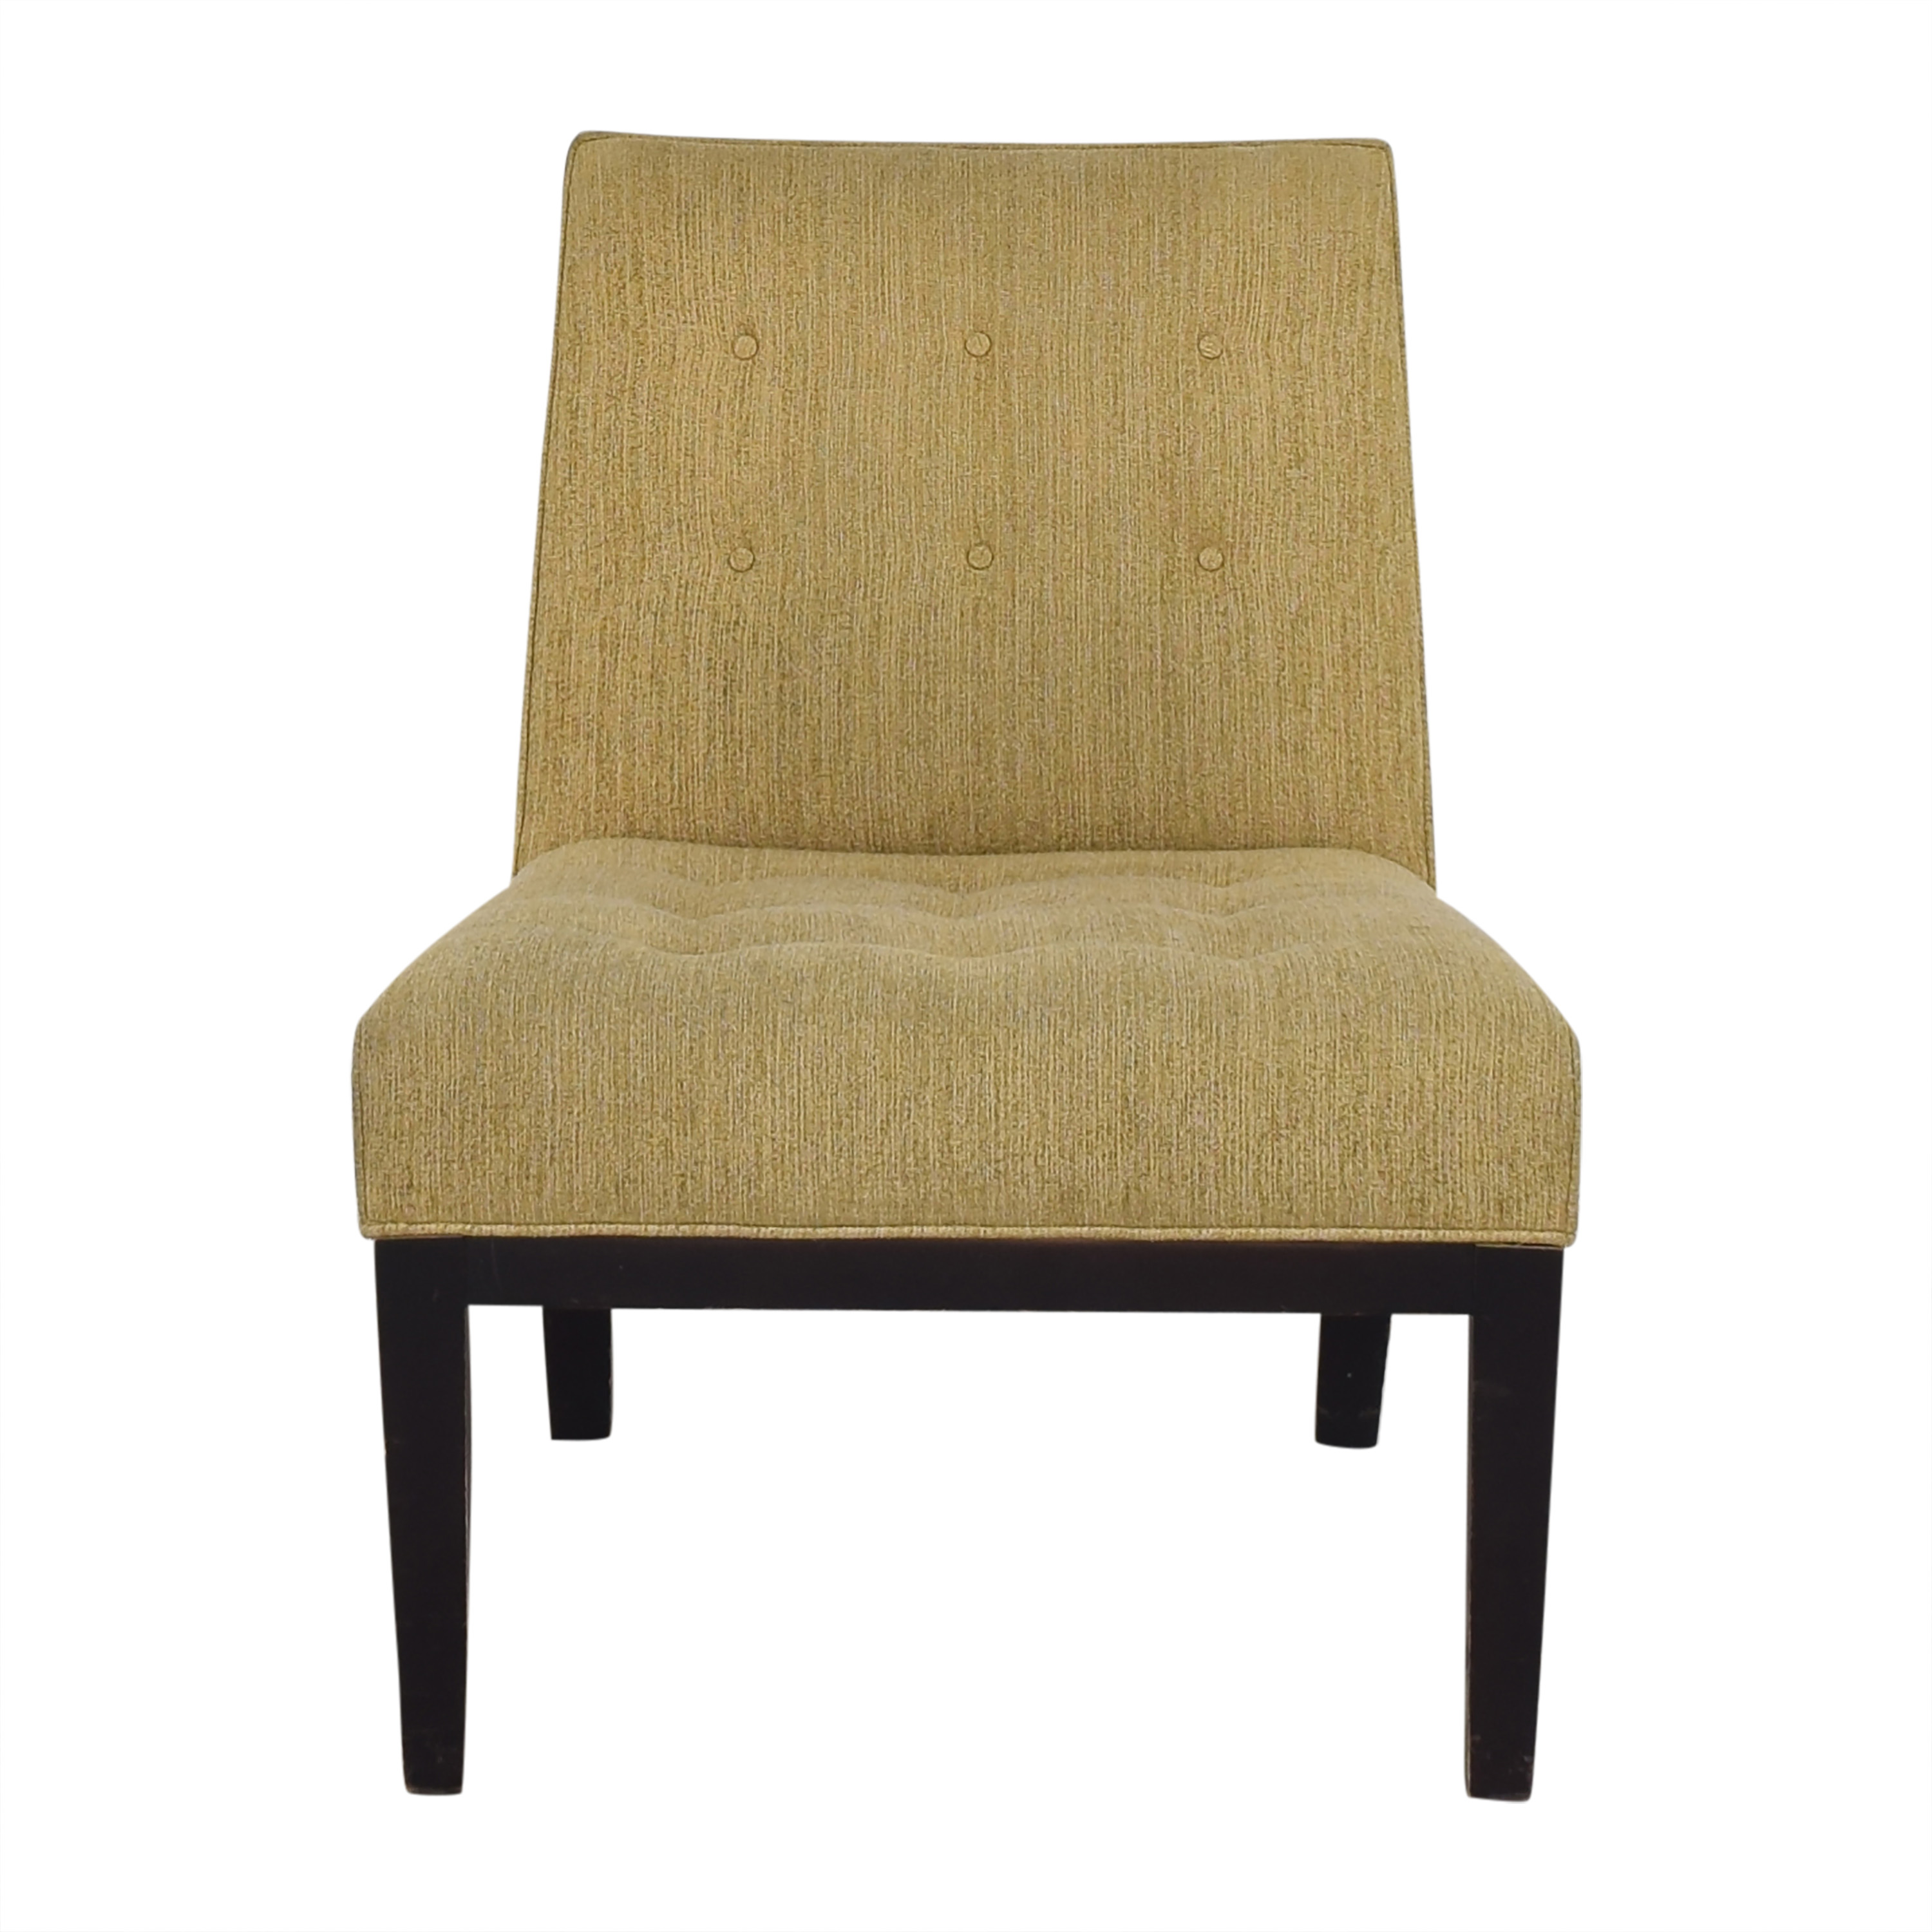 Room & Board Room & Board Tufted Slipper Chair ct